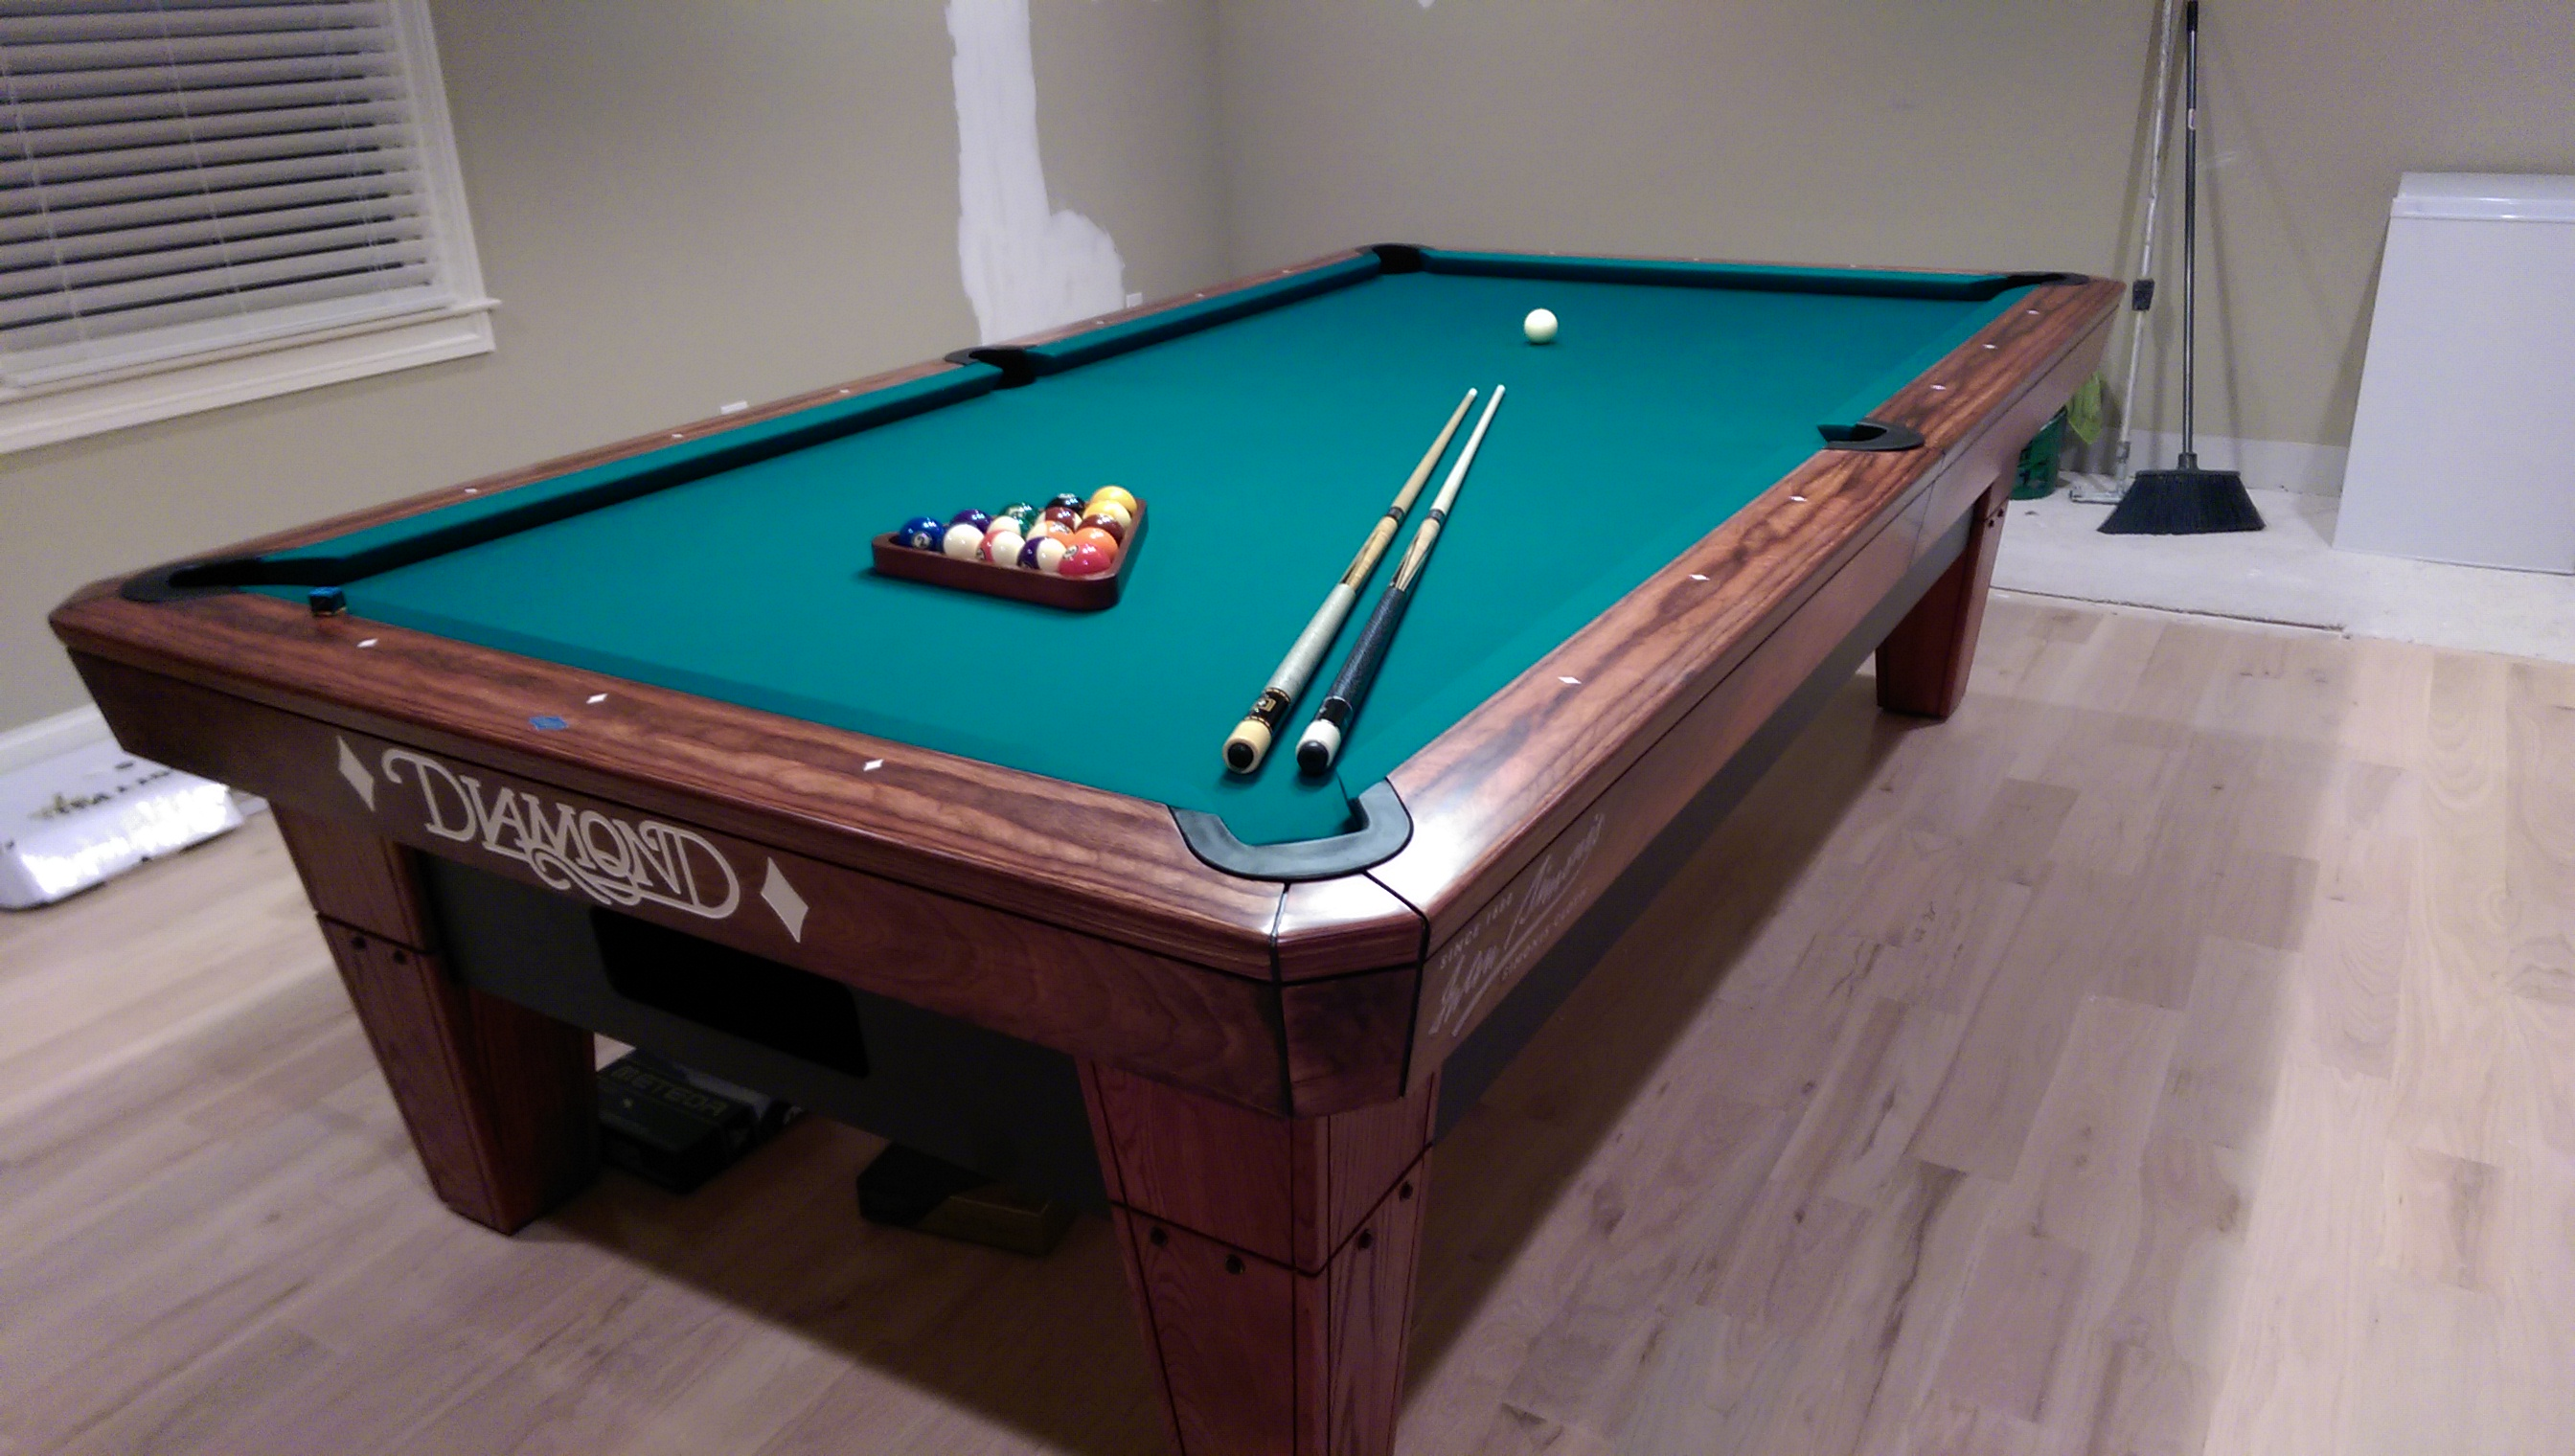 New Pool Room With A Diamond Pro Am Pool Table - Buy my pool table